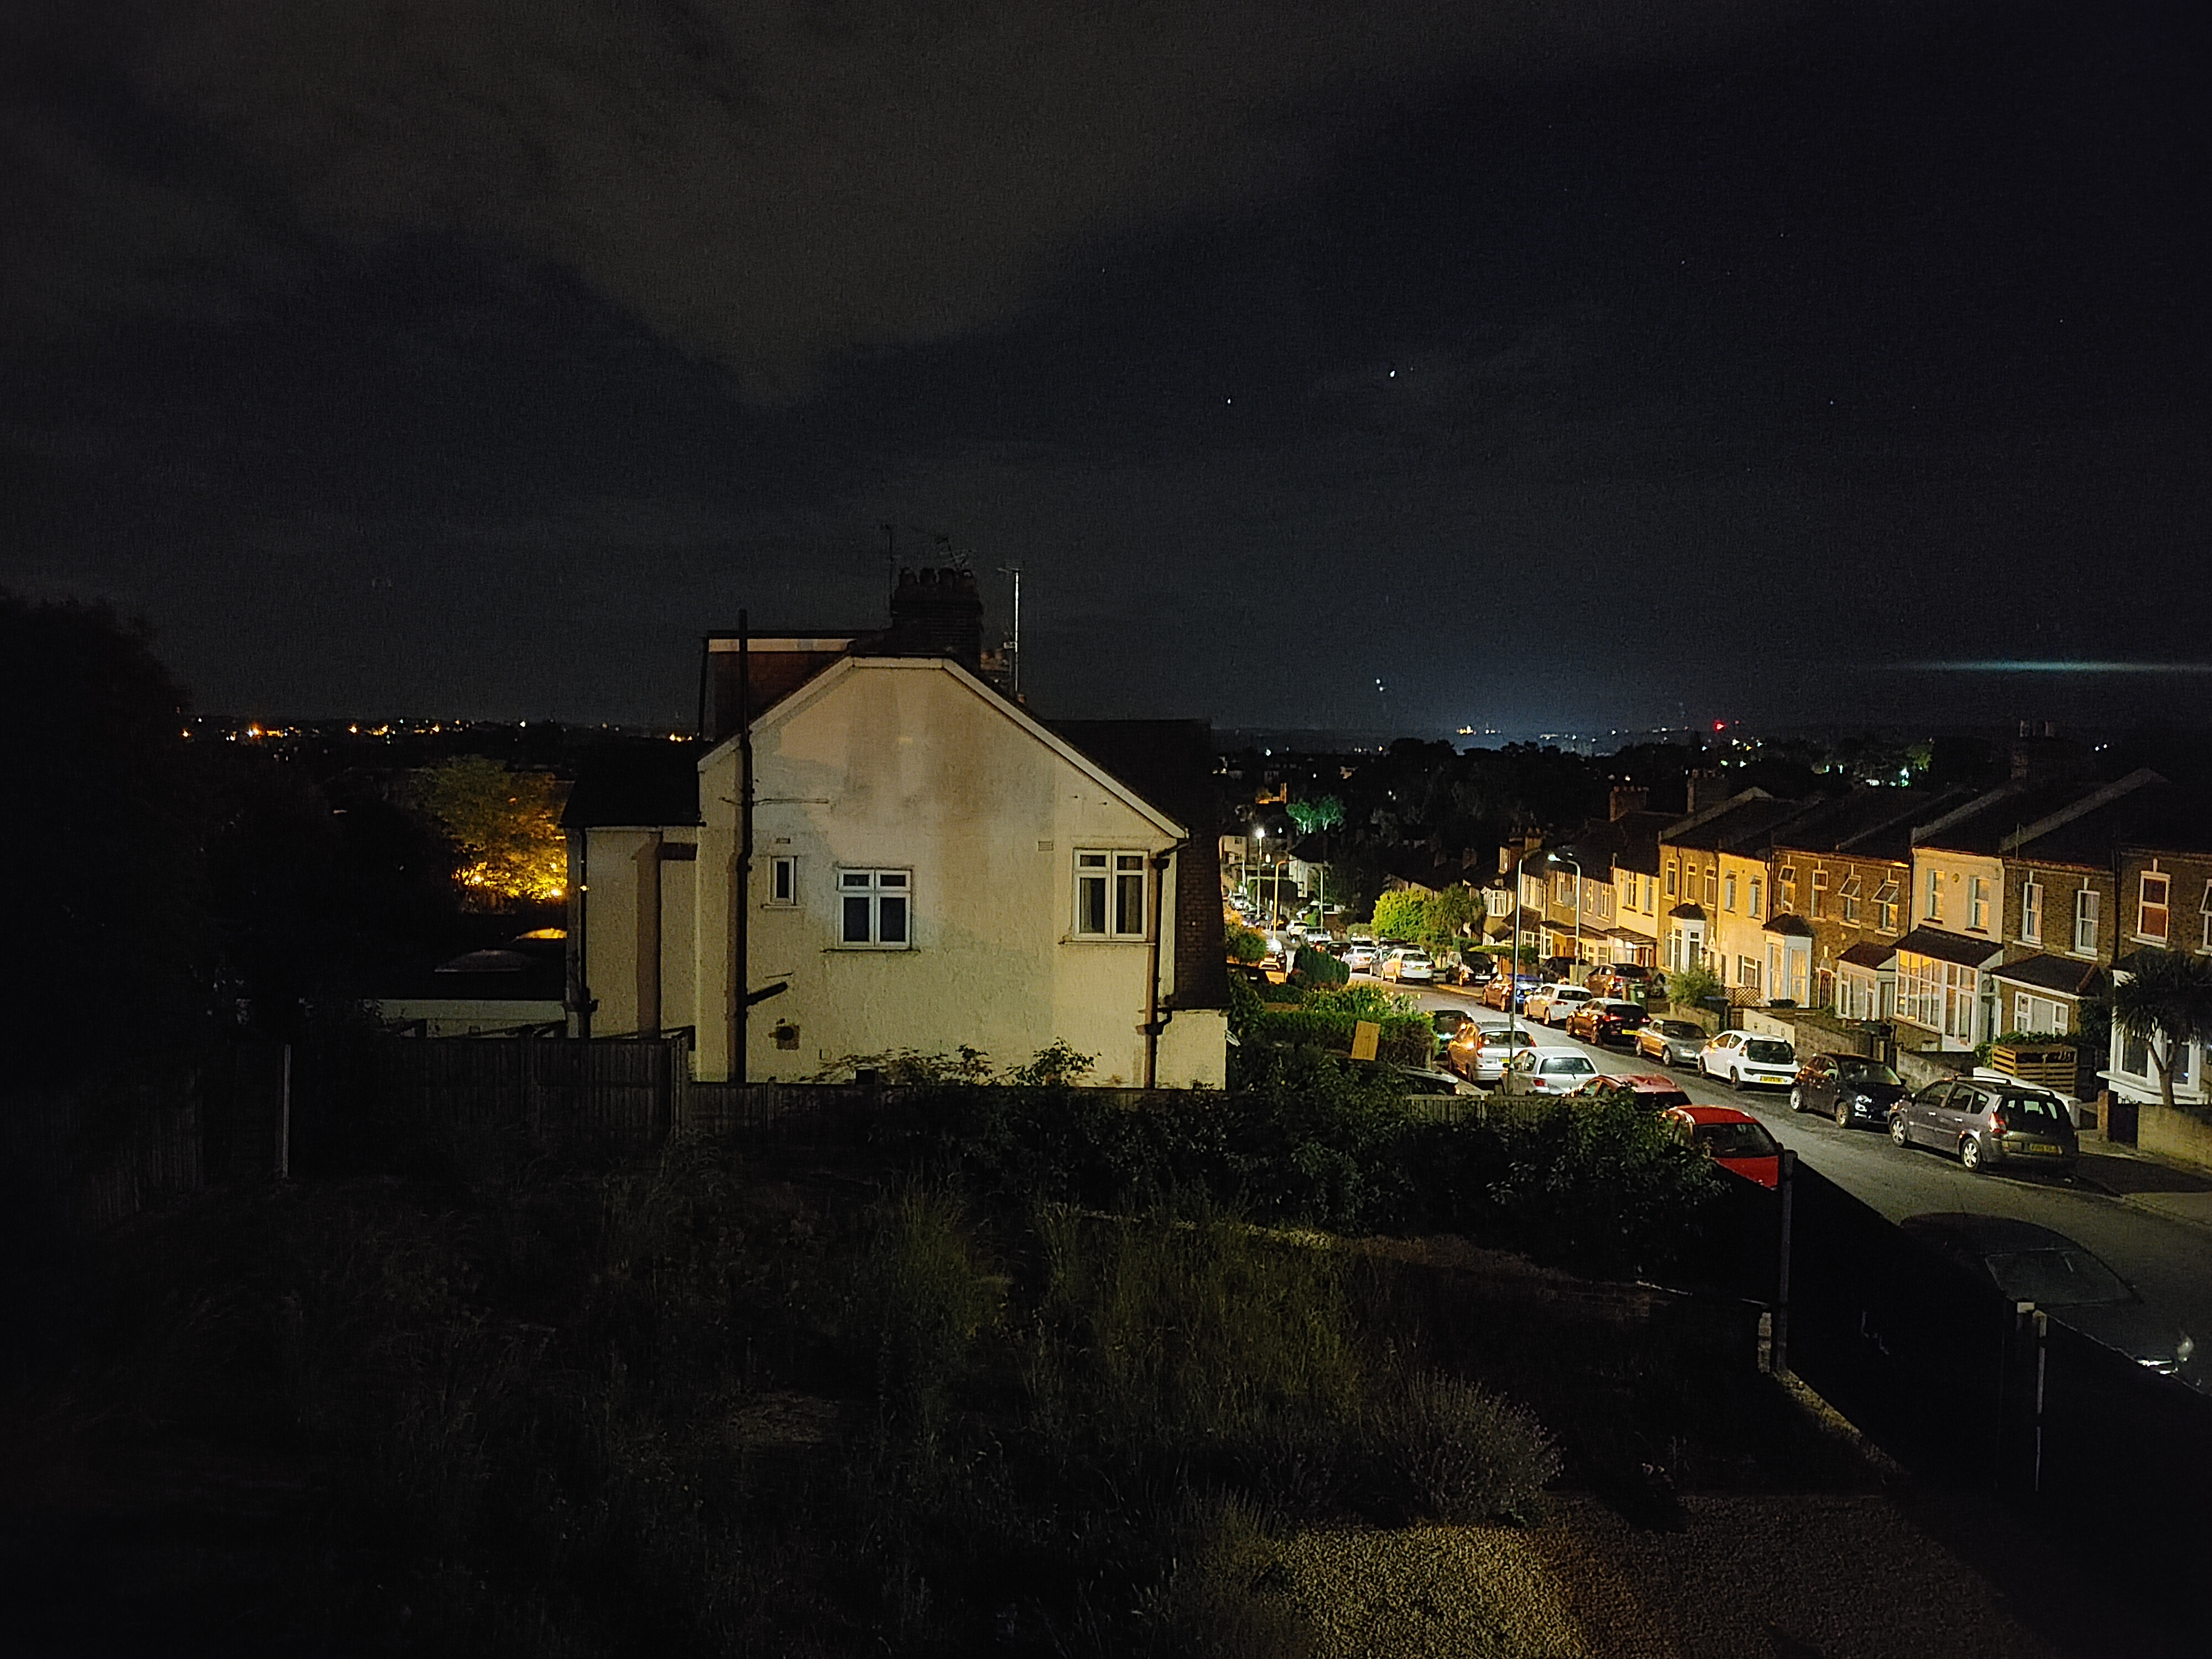 Low-light images are solid enough, but do not have the dynamic range or detail of a truly great night phone camera.